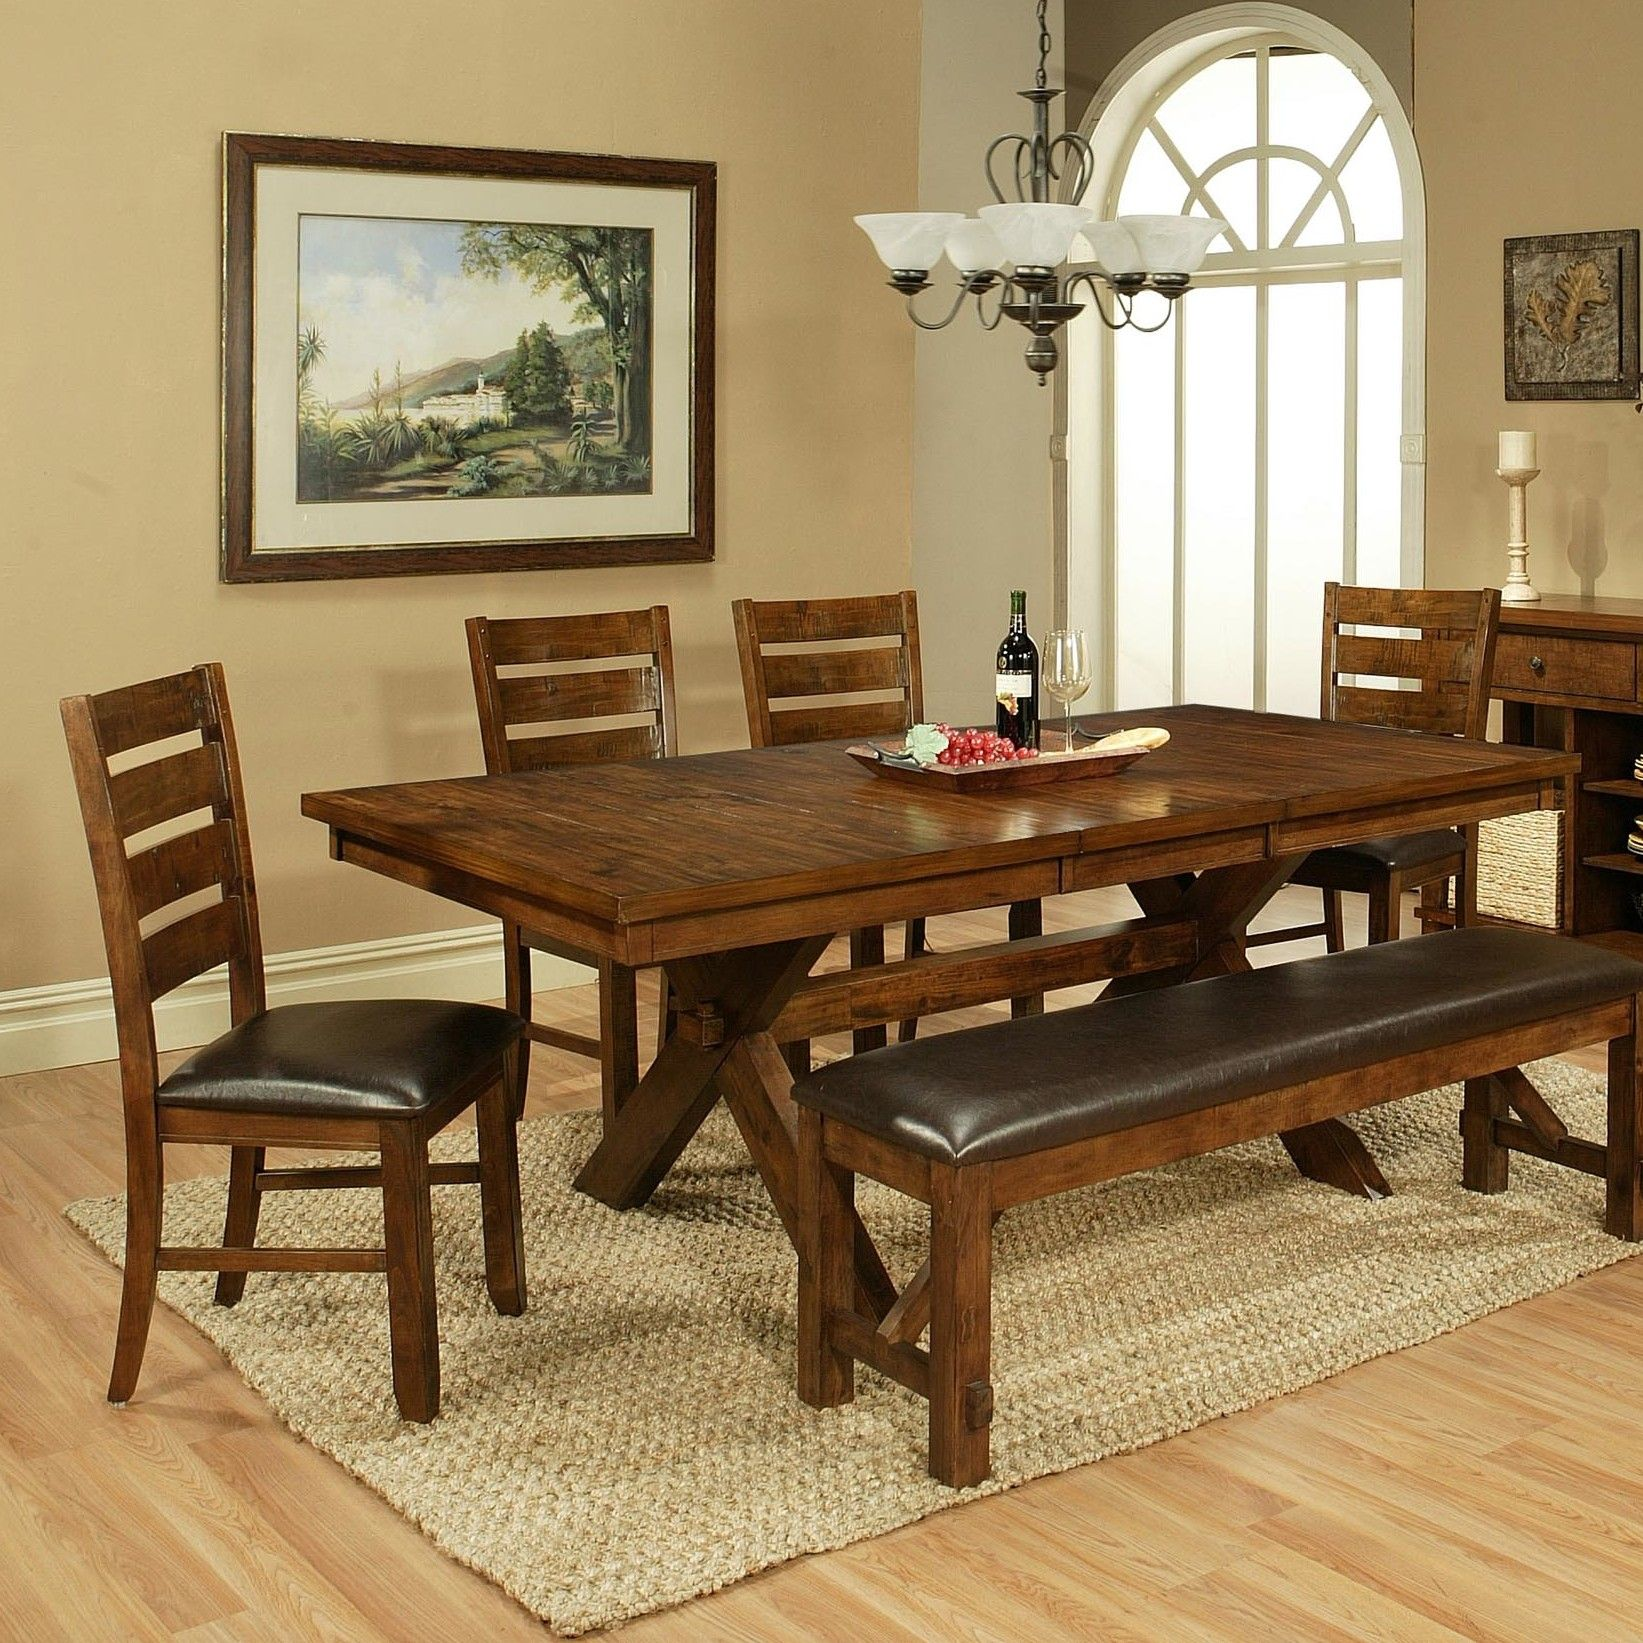 Whalen Furniture Vineyard Dining Table Reviews Wayfair